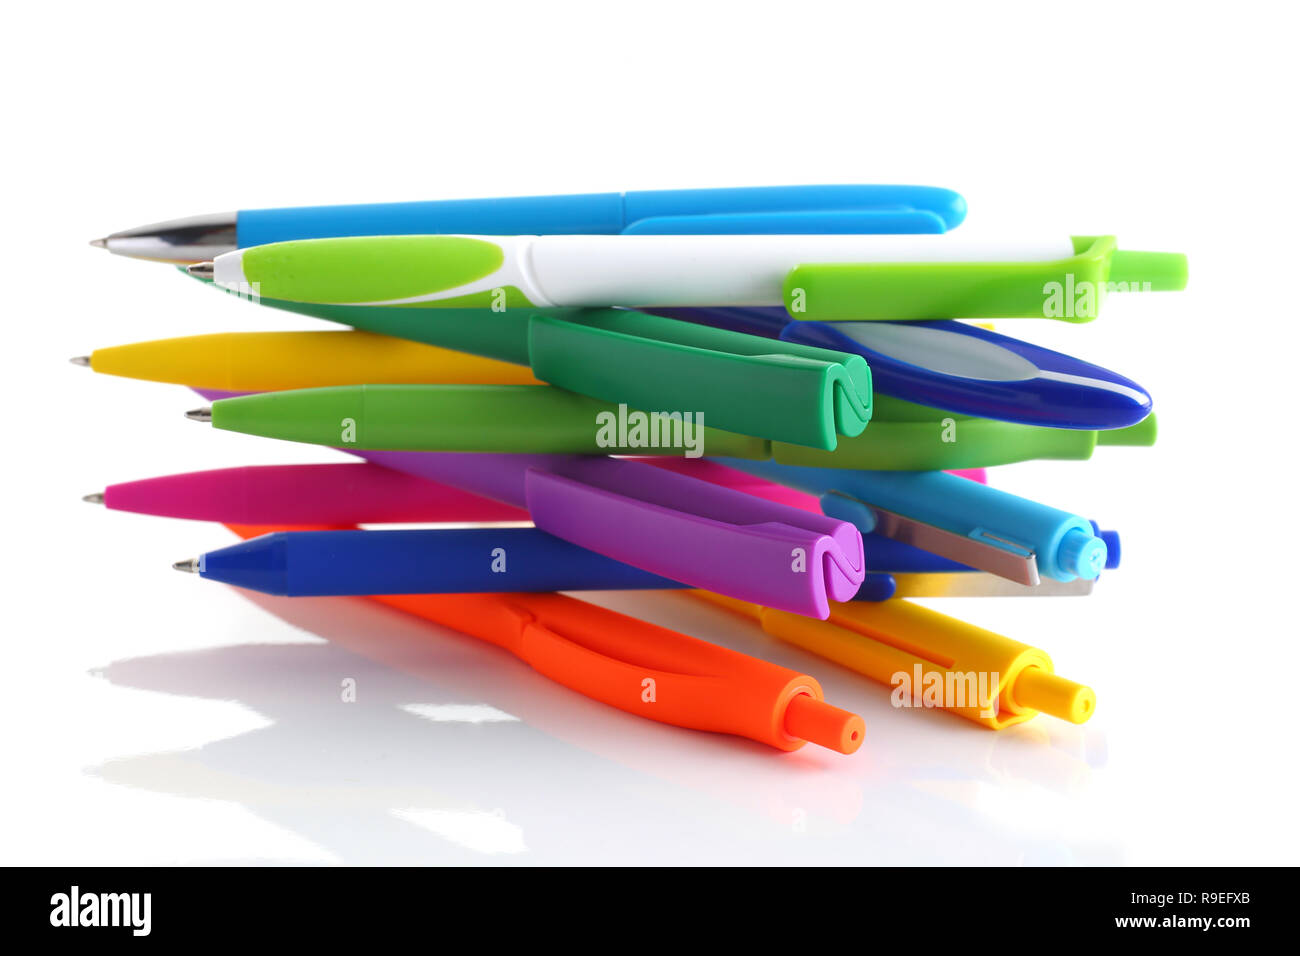 Multi colored ball pens on white background Stock Photo